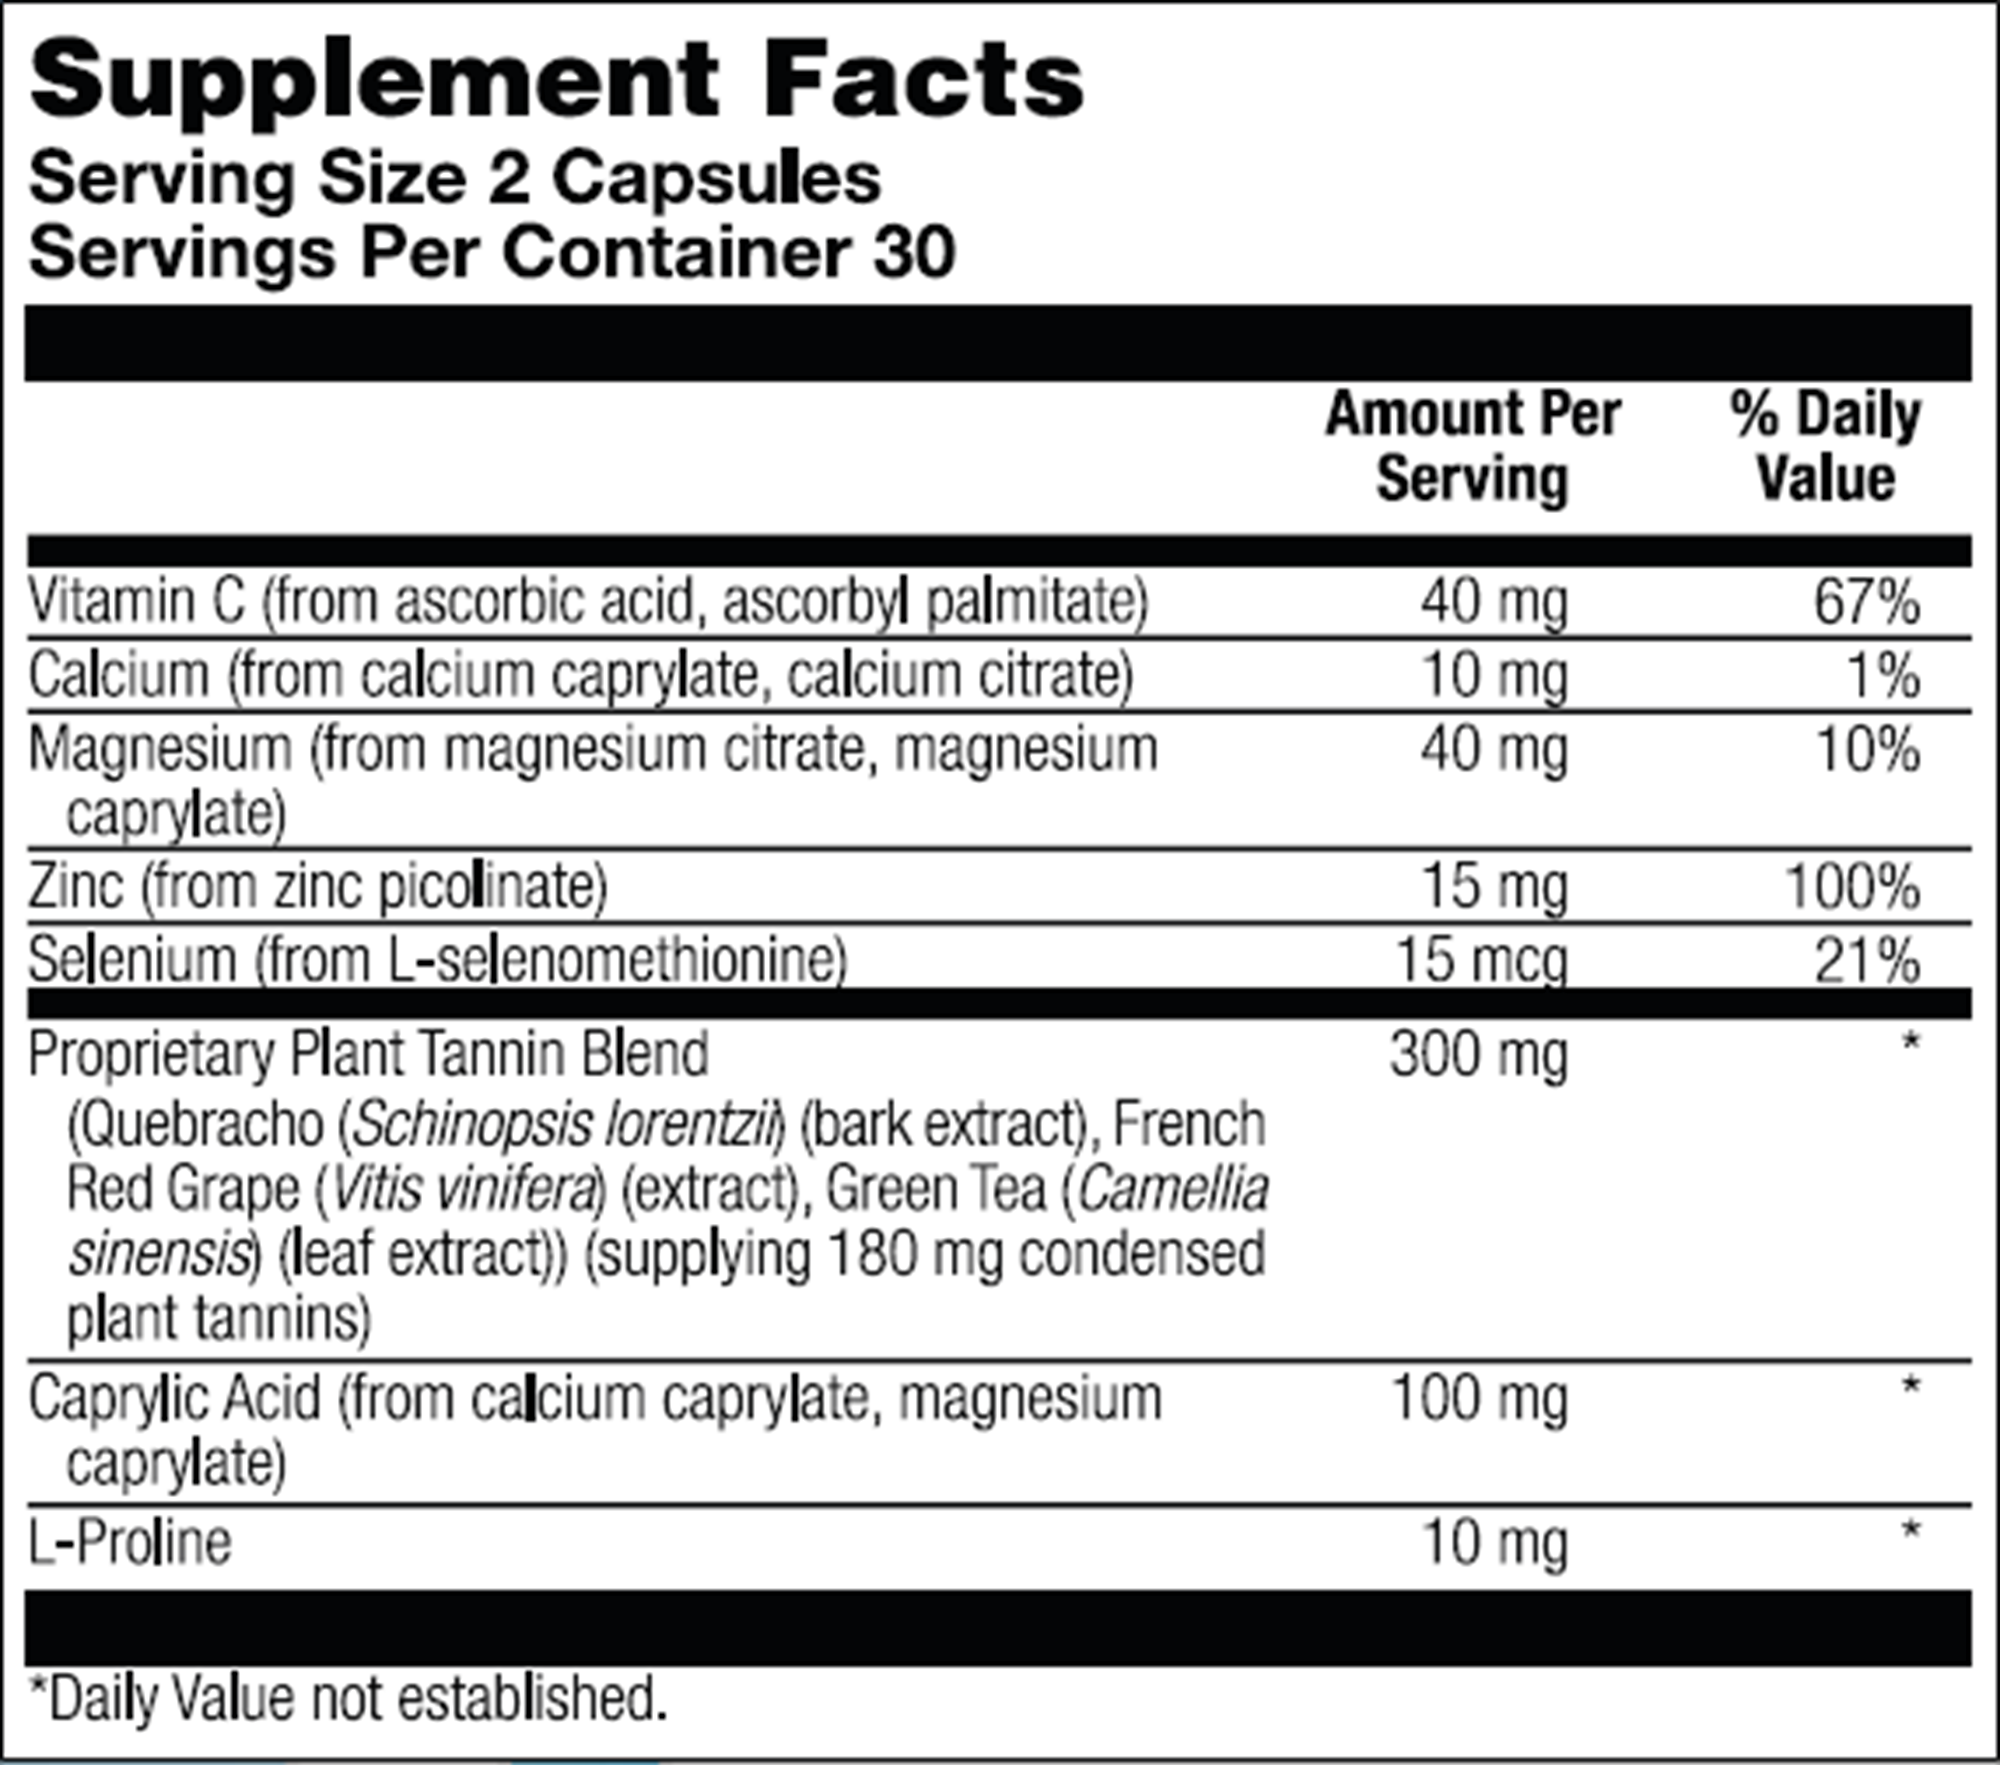 DysbioX (Nutra Biogenesis) Supplement Facts